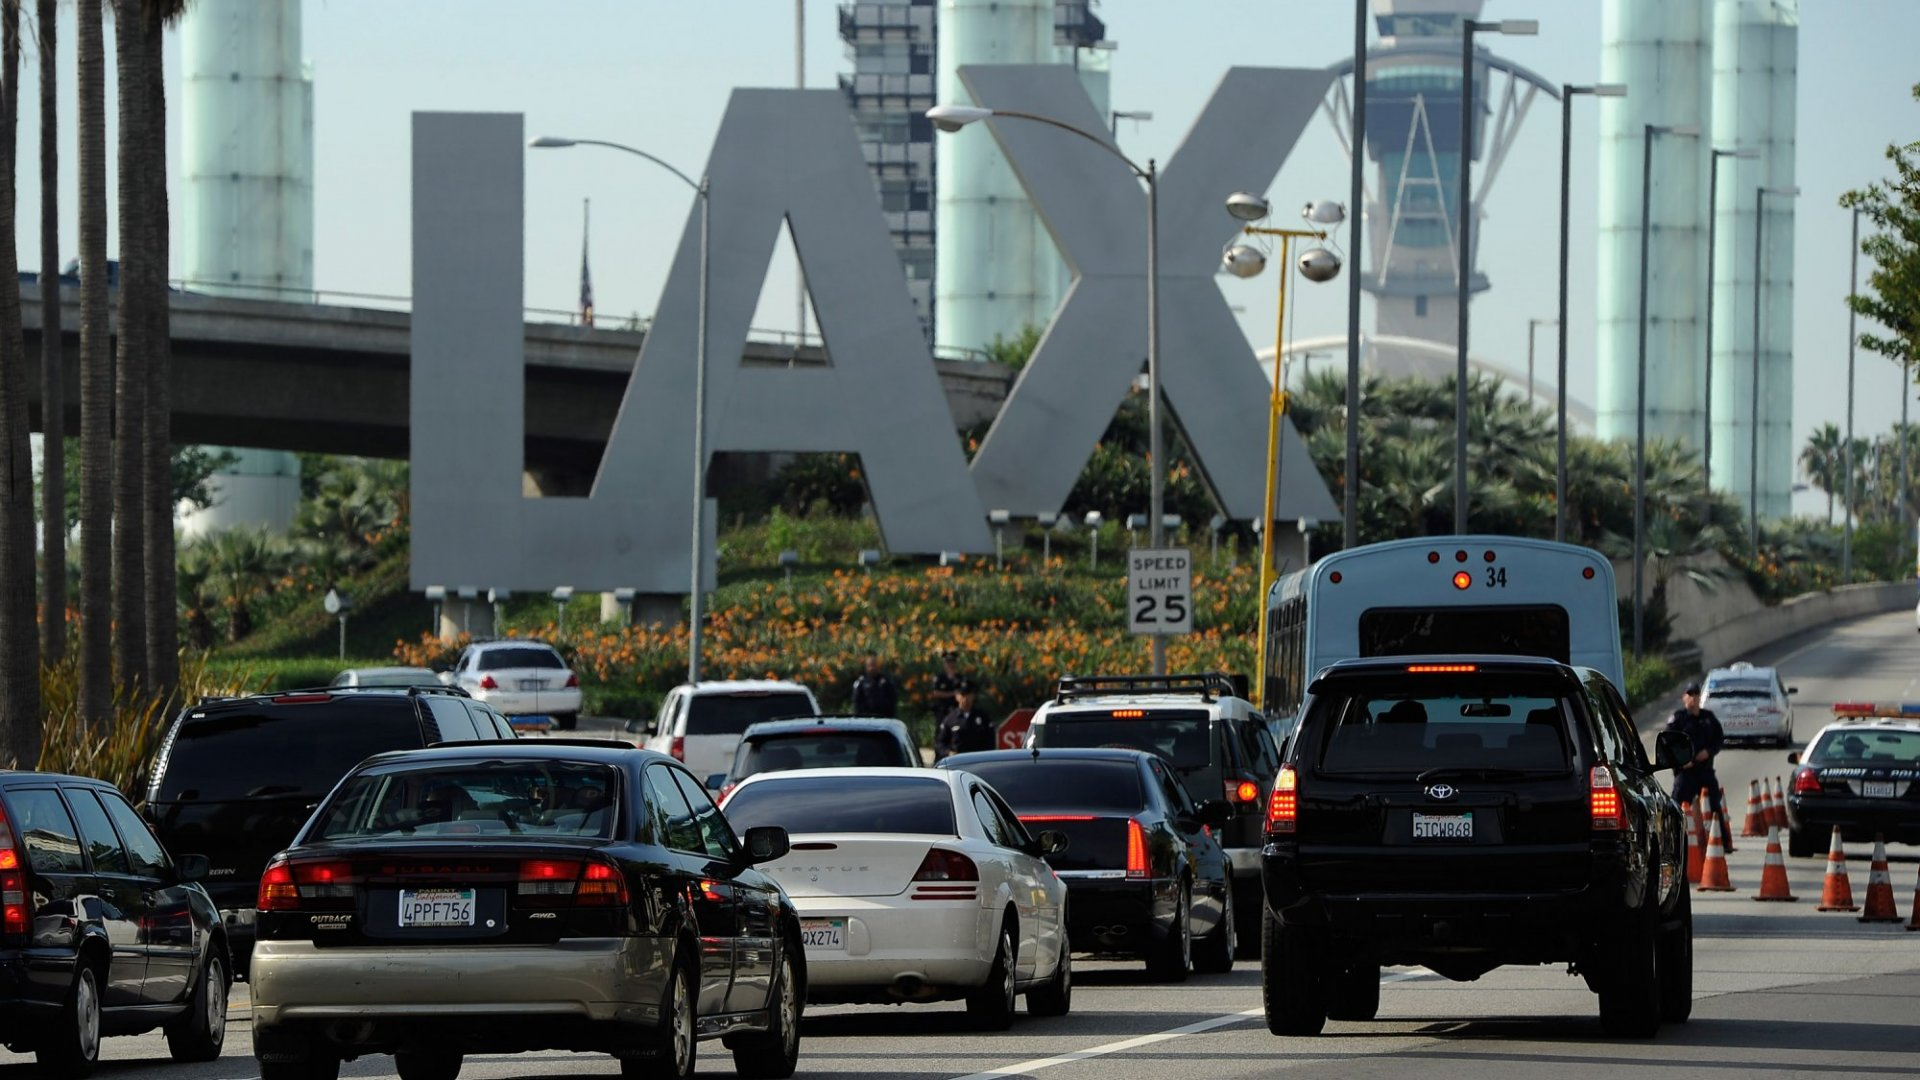 Uber, Lyft Can Pick Up at LAX, But There's a Catch